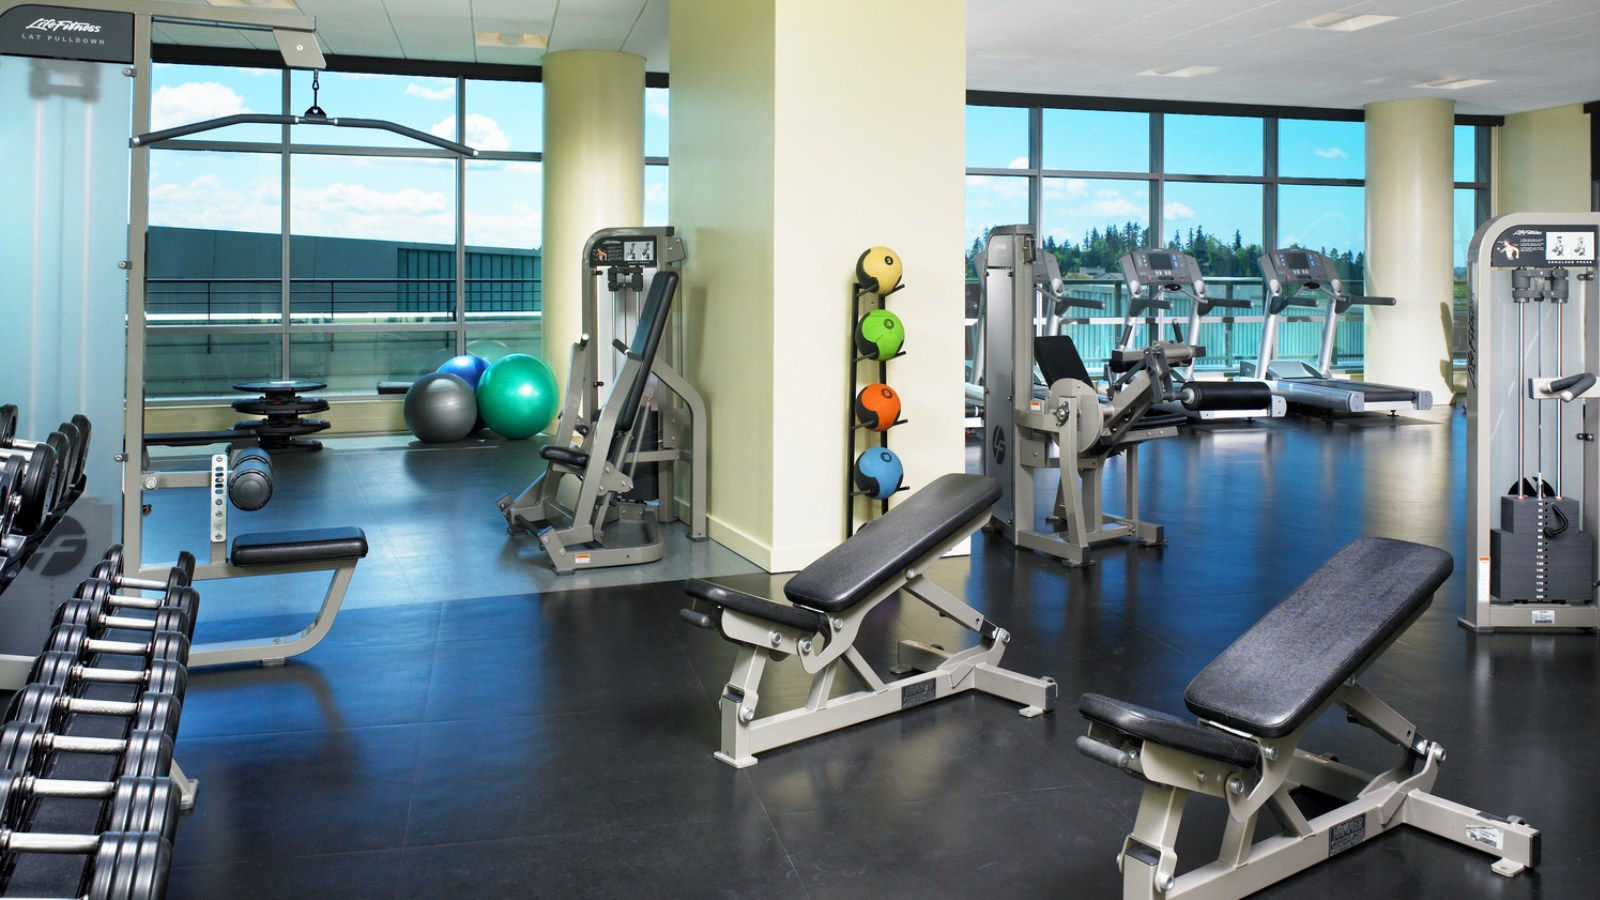 Bellevue Hotel Features - Fitness Studio